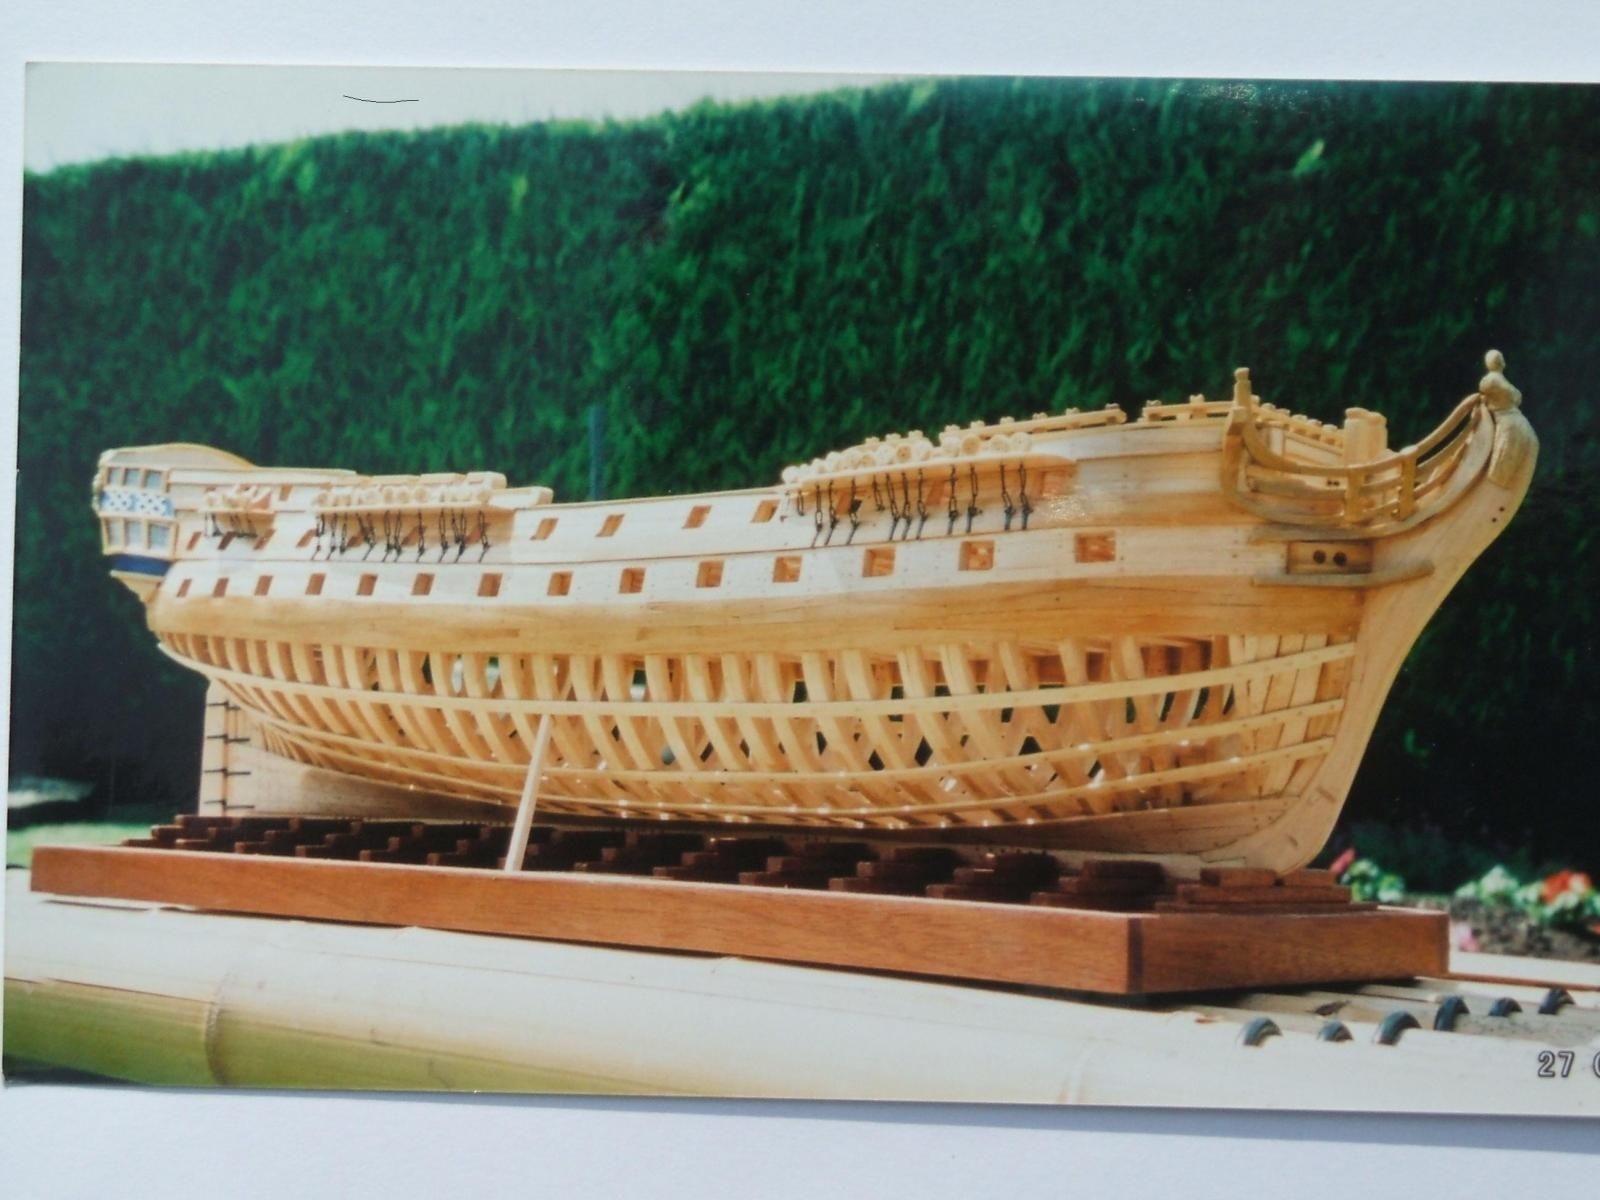 scratch building ship models - Google Search | scale modeling ...